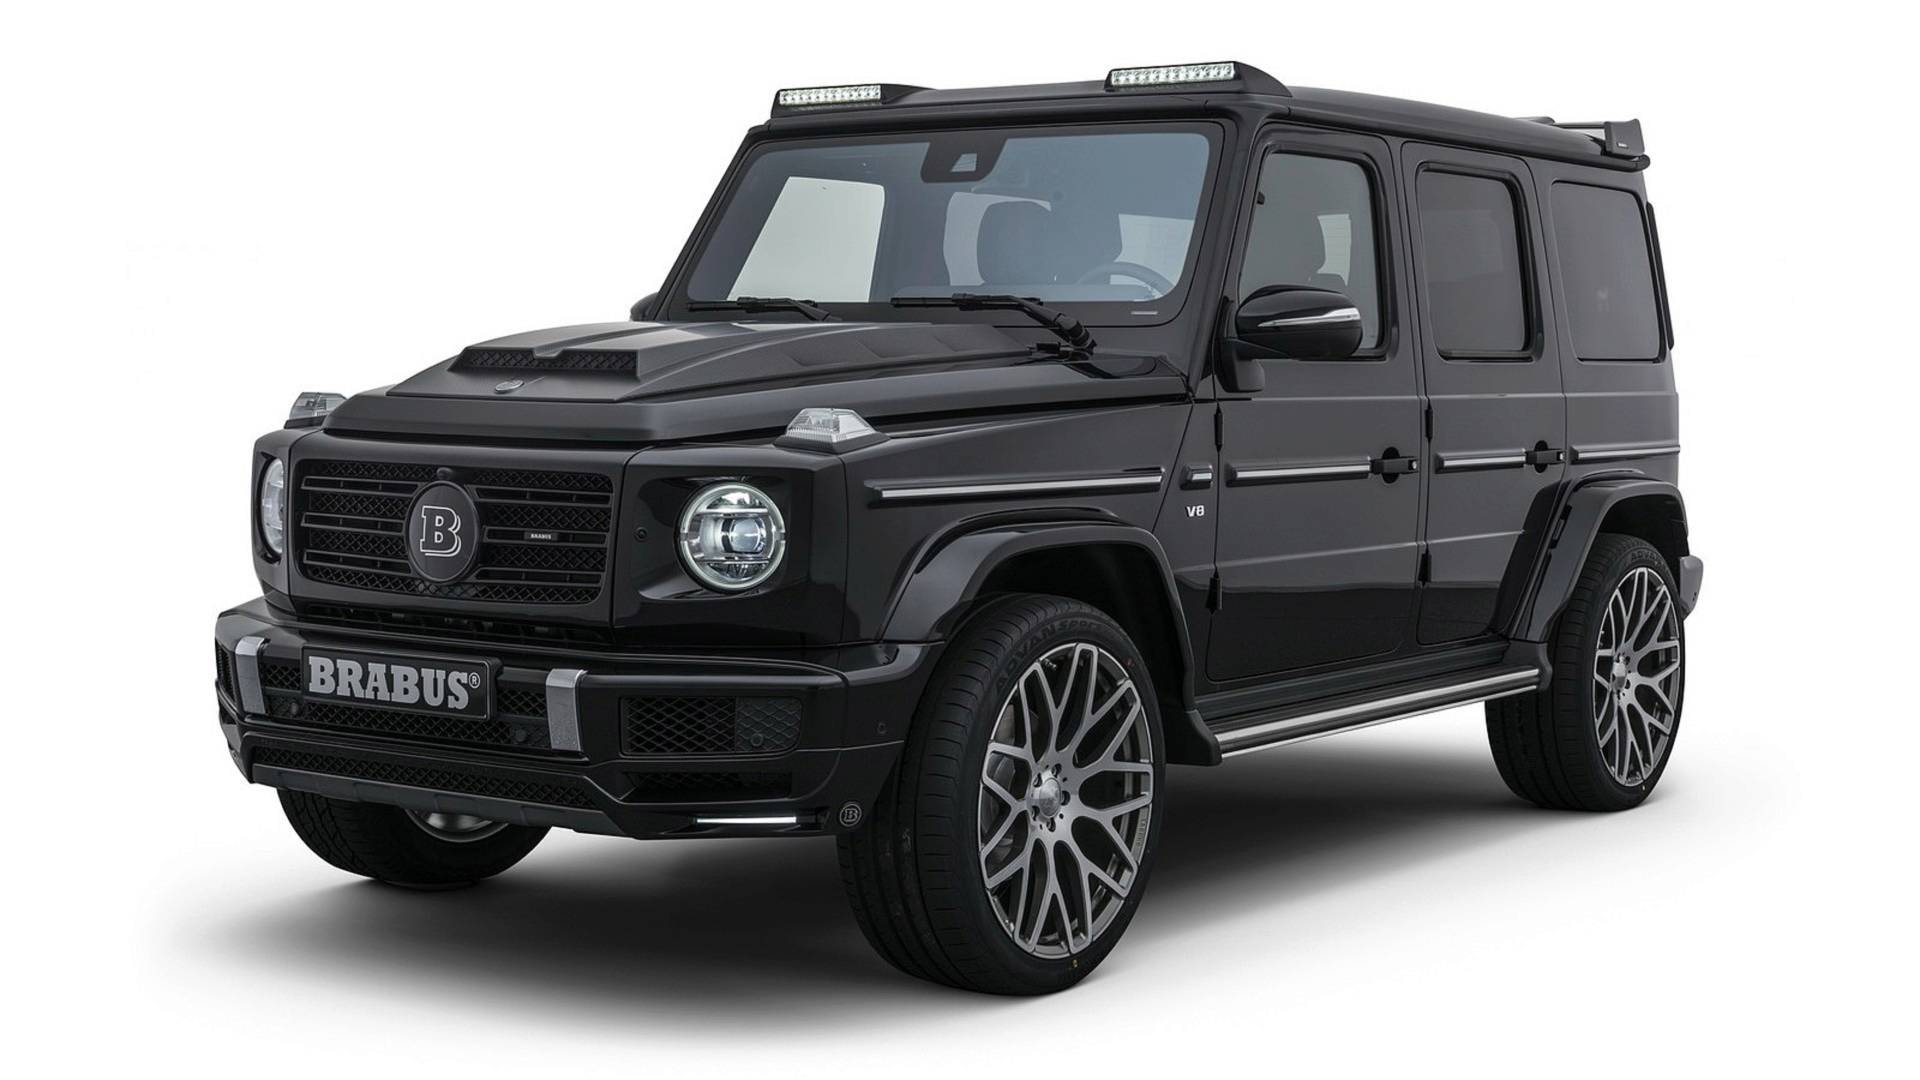 brabus tuned 2019 mercedes benz g class turns up the power, baffles